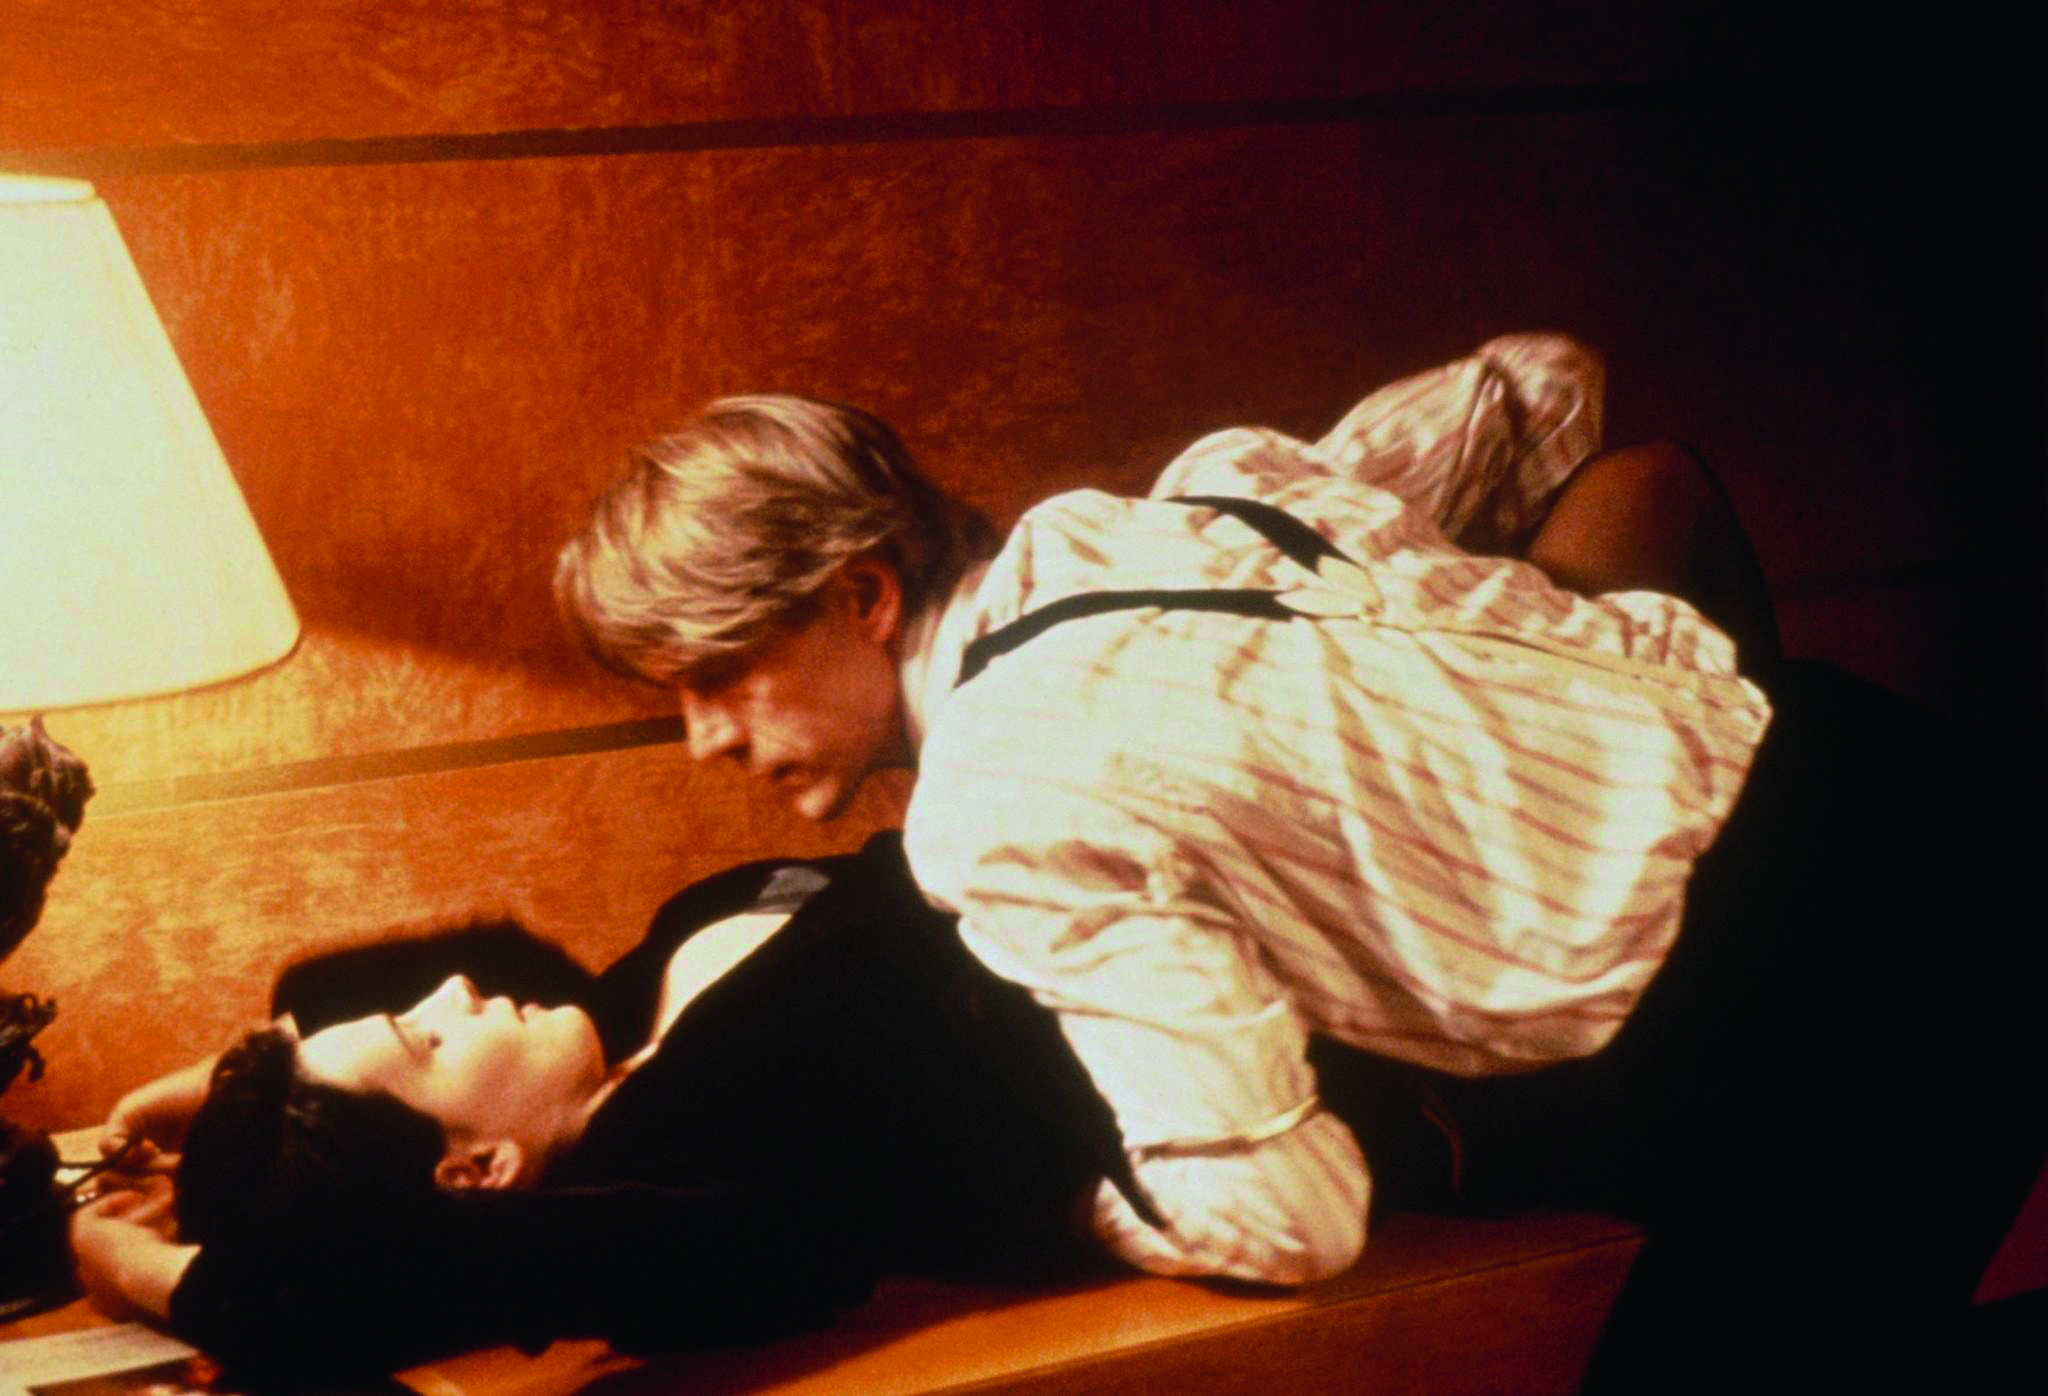 still-of-juliette-binoche-and-jeremy-irons-in-damage-1992-large-picture